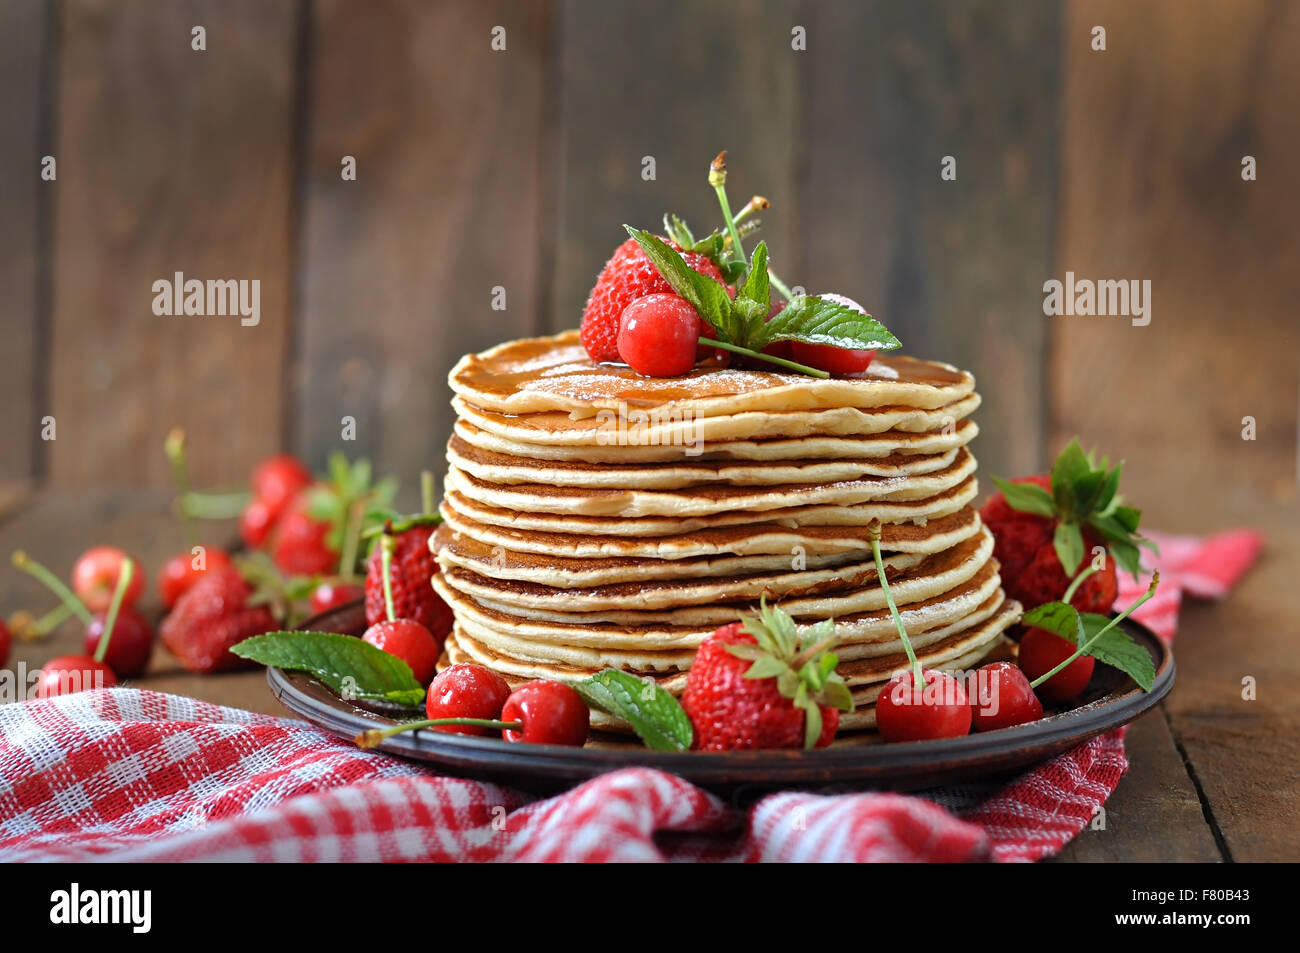 Pancakes with berries and syrup in a rustic style. - Stock Image